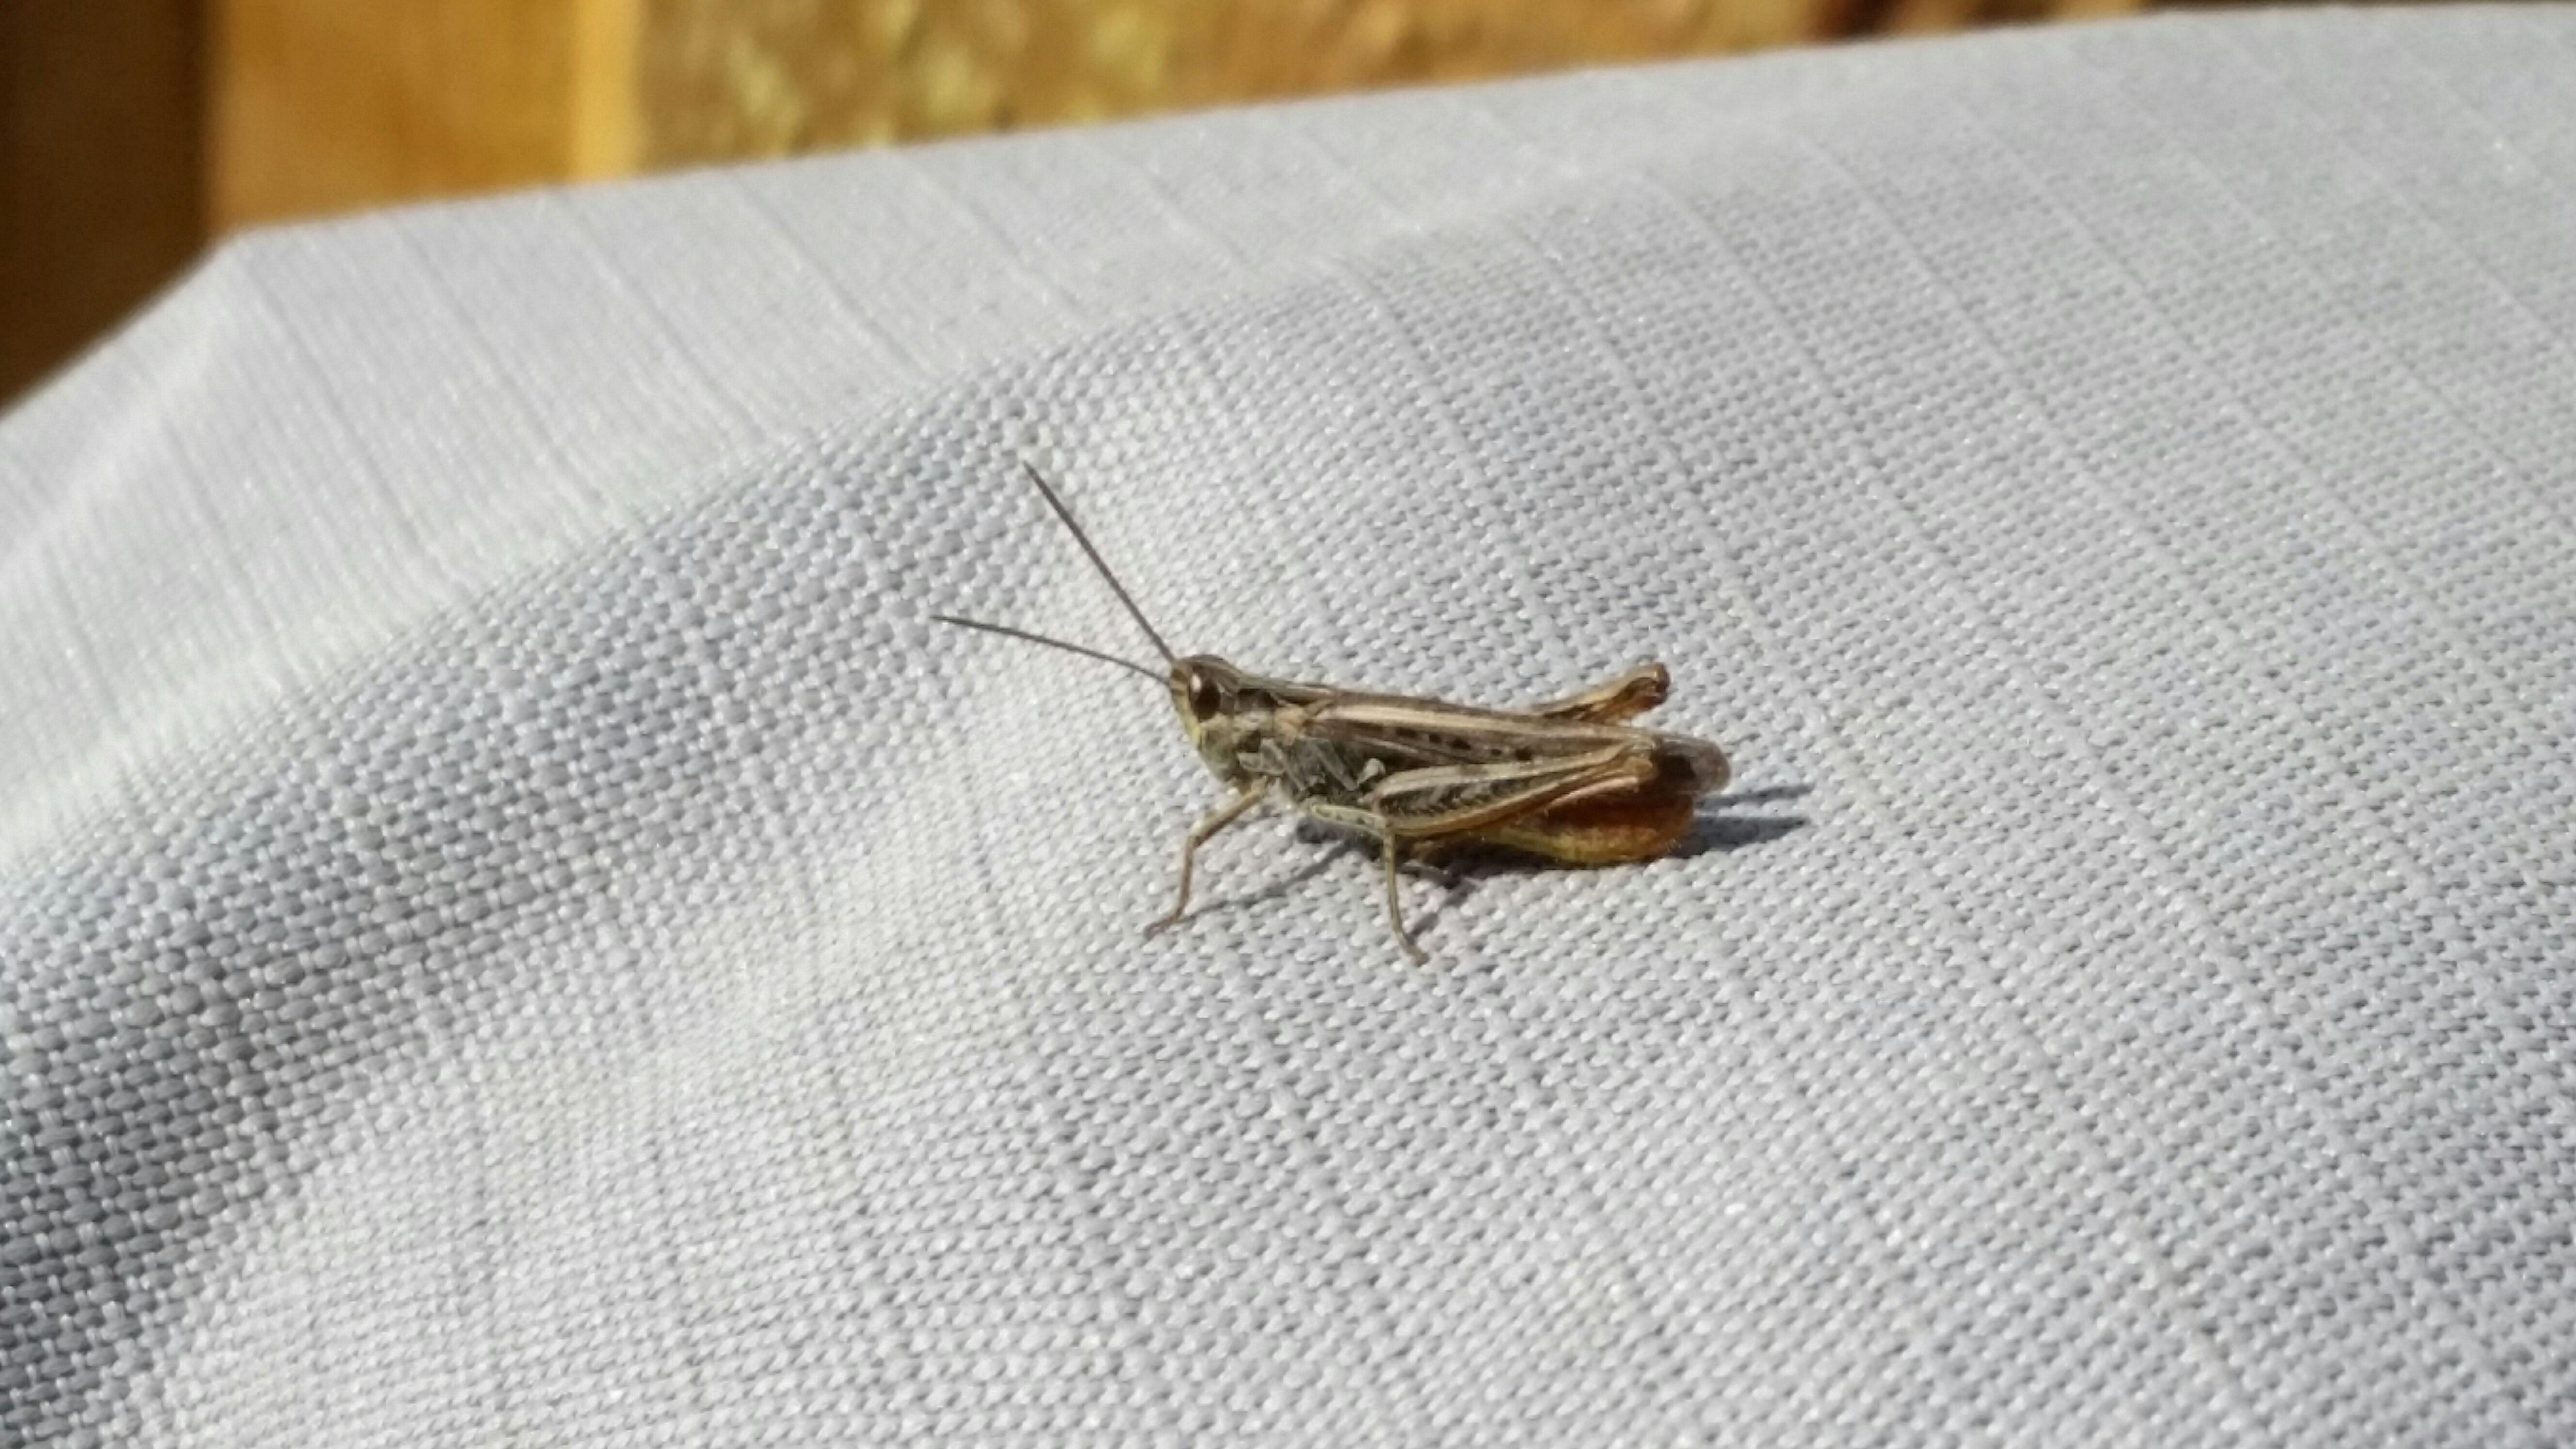 Cricket on a piece of fabric.